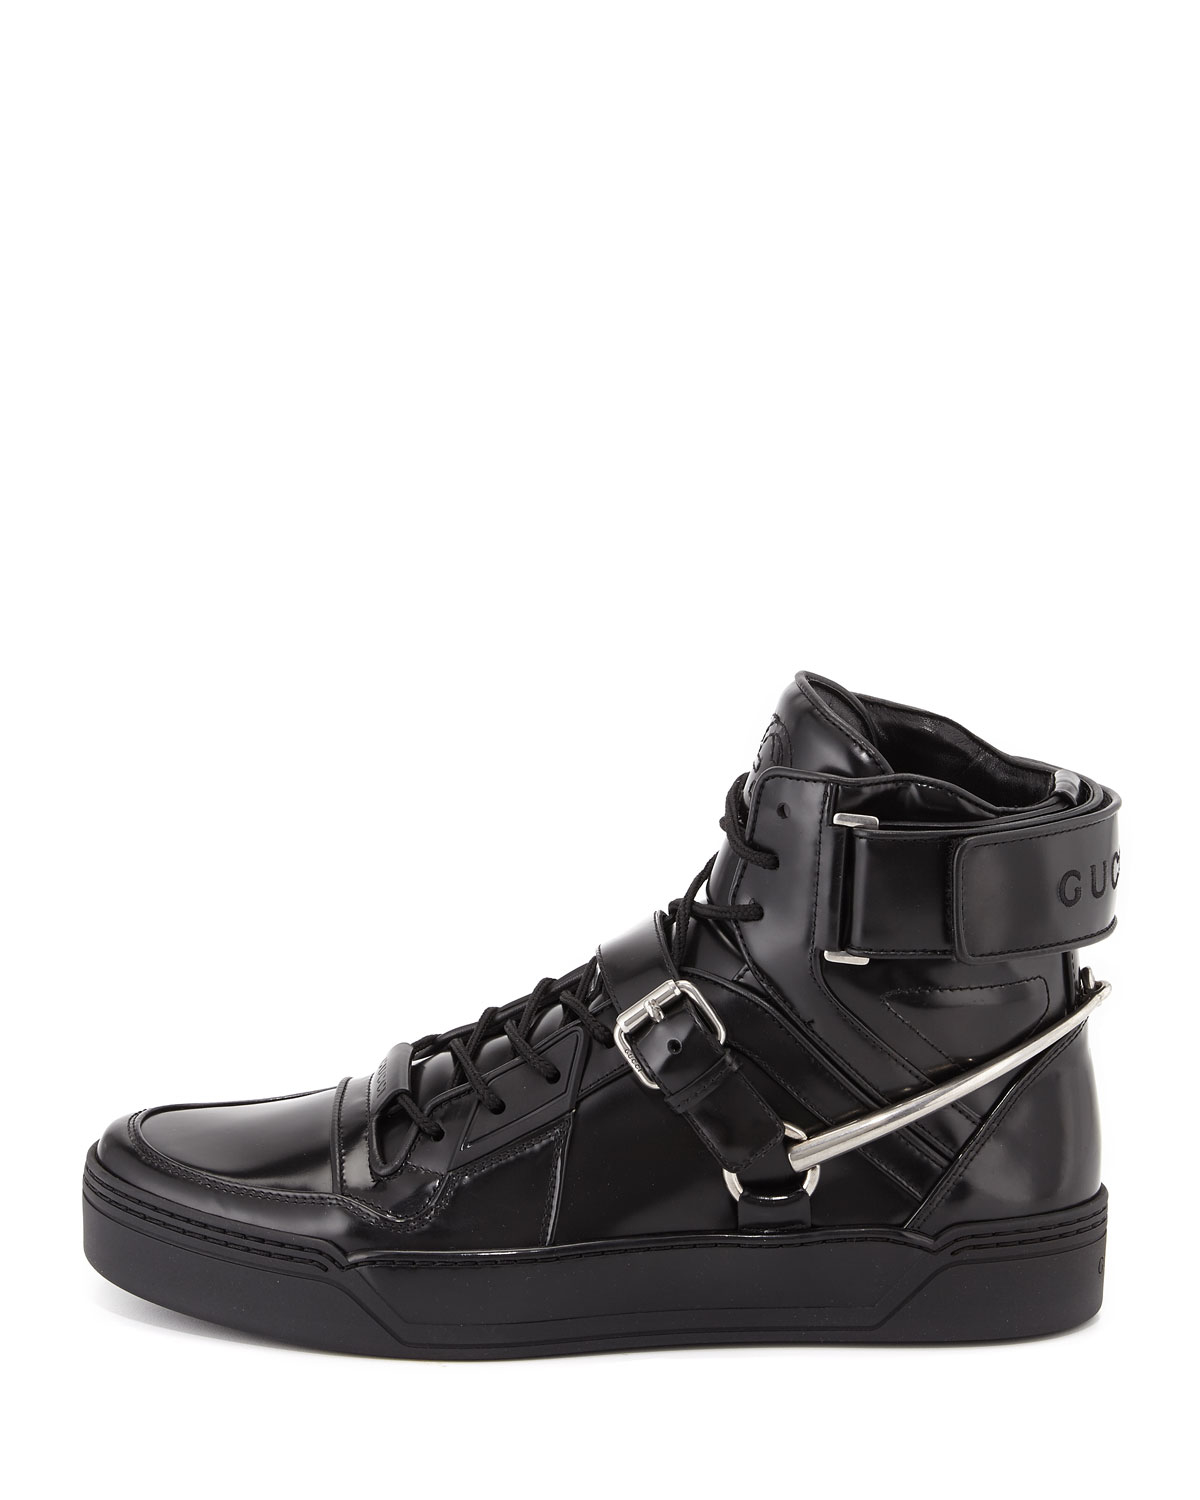 d1f5ea8d4b57 Lyst - Gucci Spur Tennis Leather High-top Sneaker With Horsebit in ...